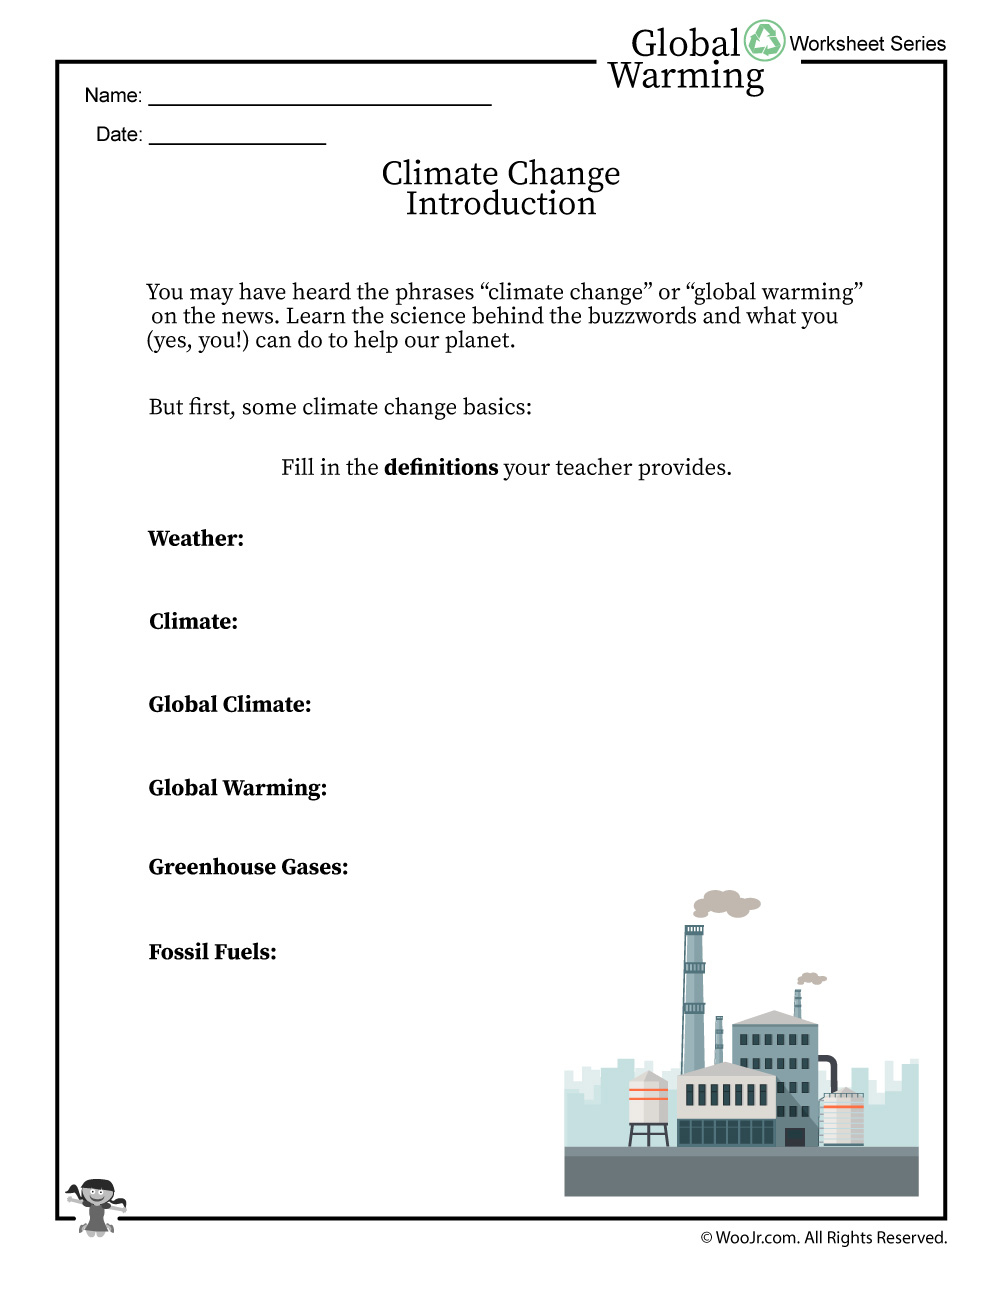 Climate Change Basics And Definitions Worksheet | Woo! Jr. Kids | Climate Change Printable Worksheets